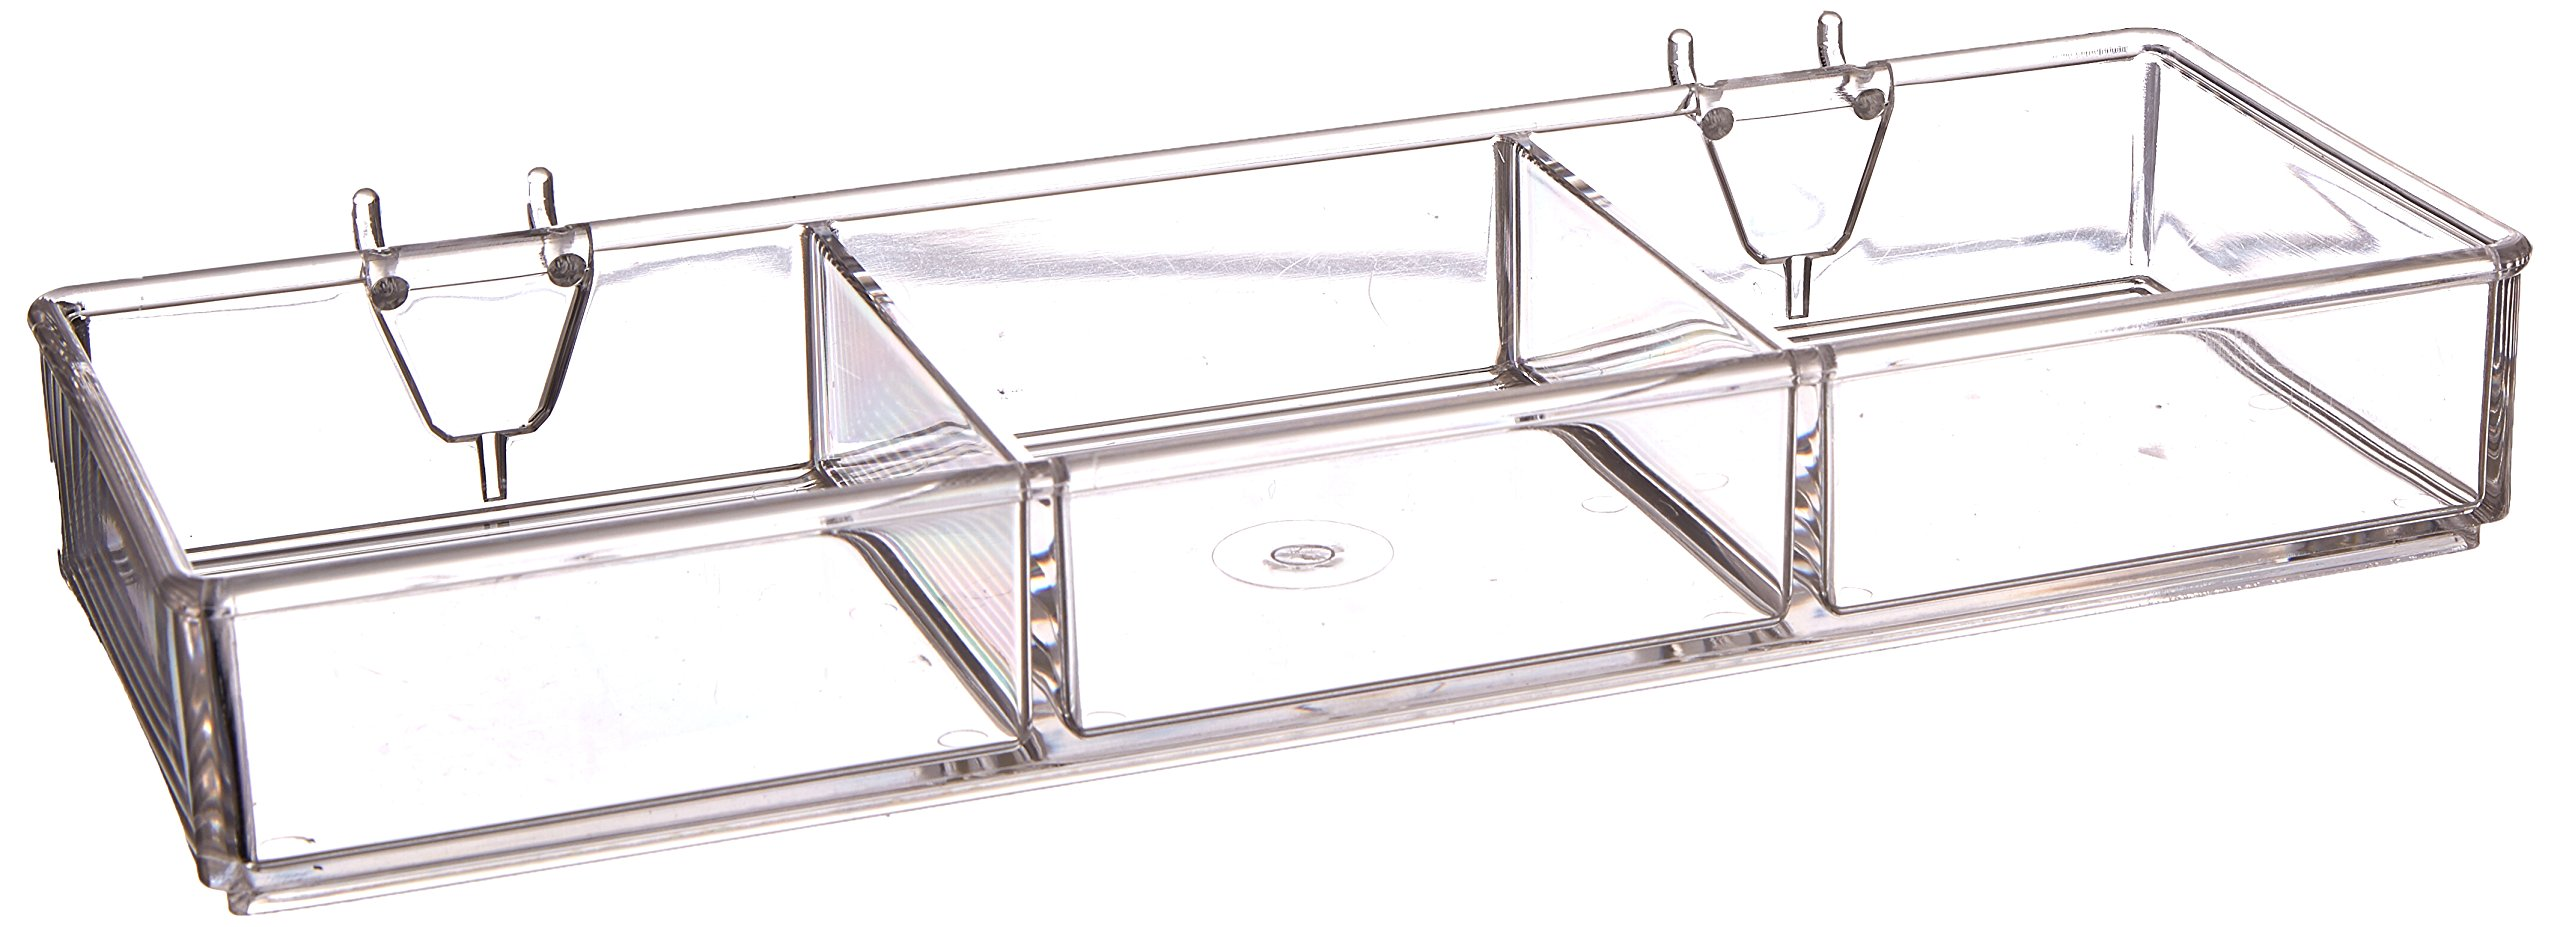 Azar Displays 225503-2pack 3-Compartment Tray for Pegboard/Slatwall (Pack of 2)